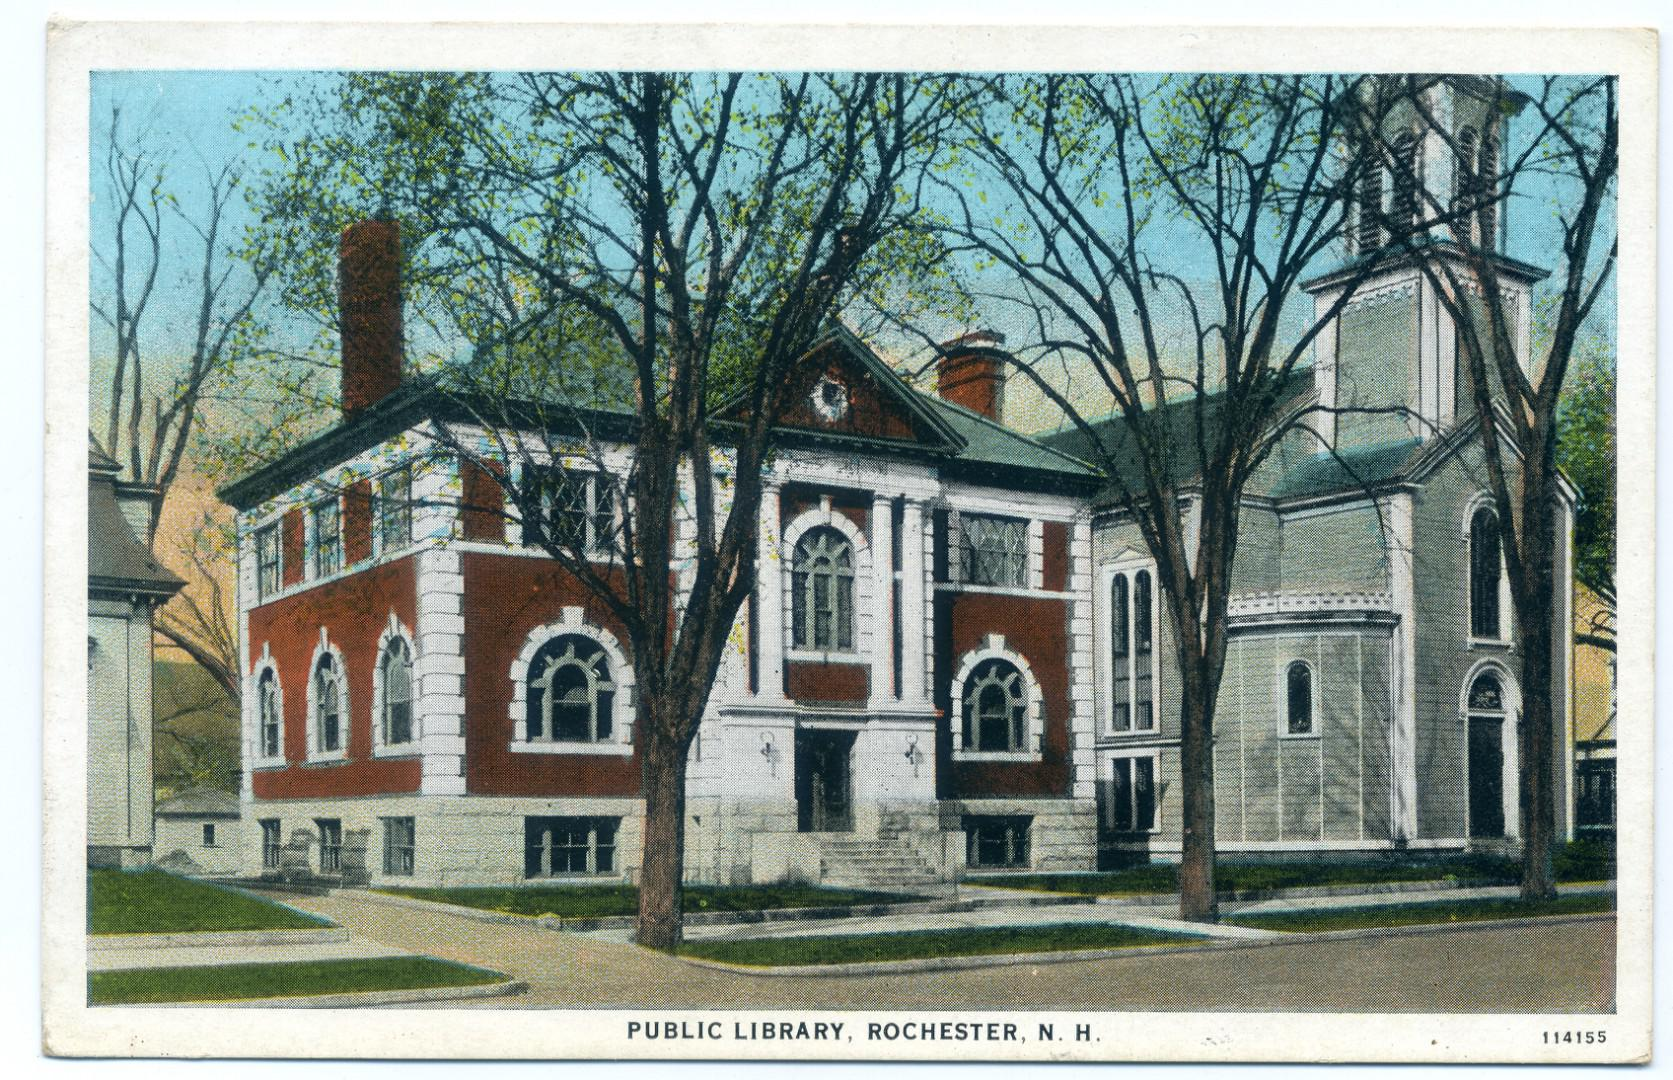 Rochester (New Hampshire): Public Library